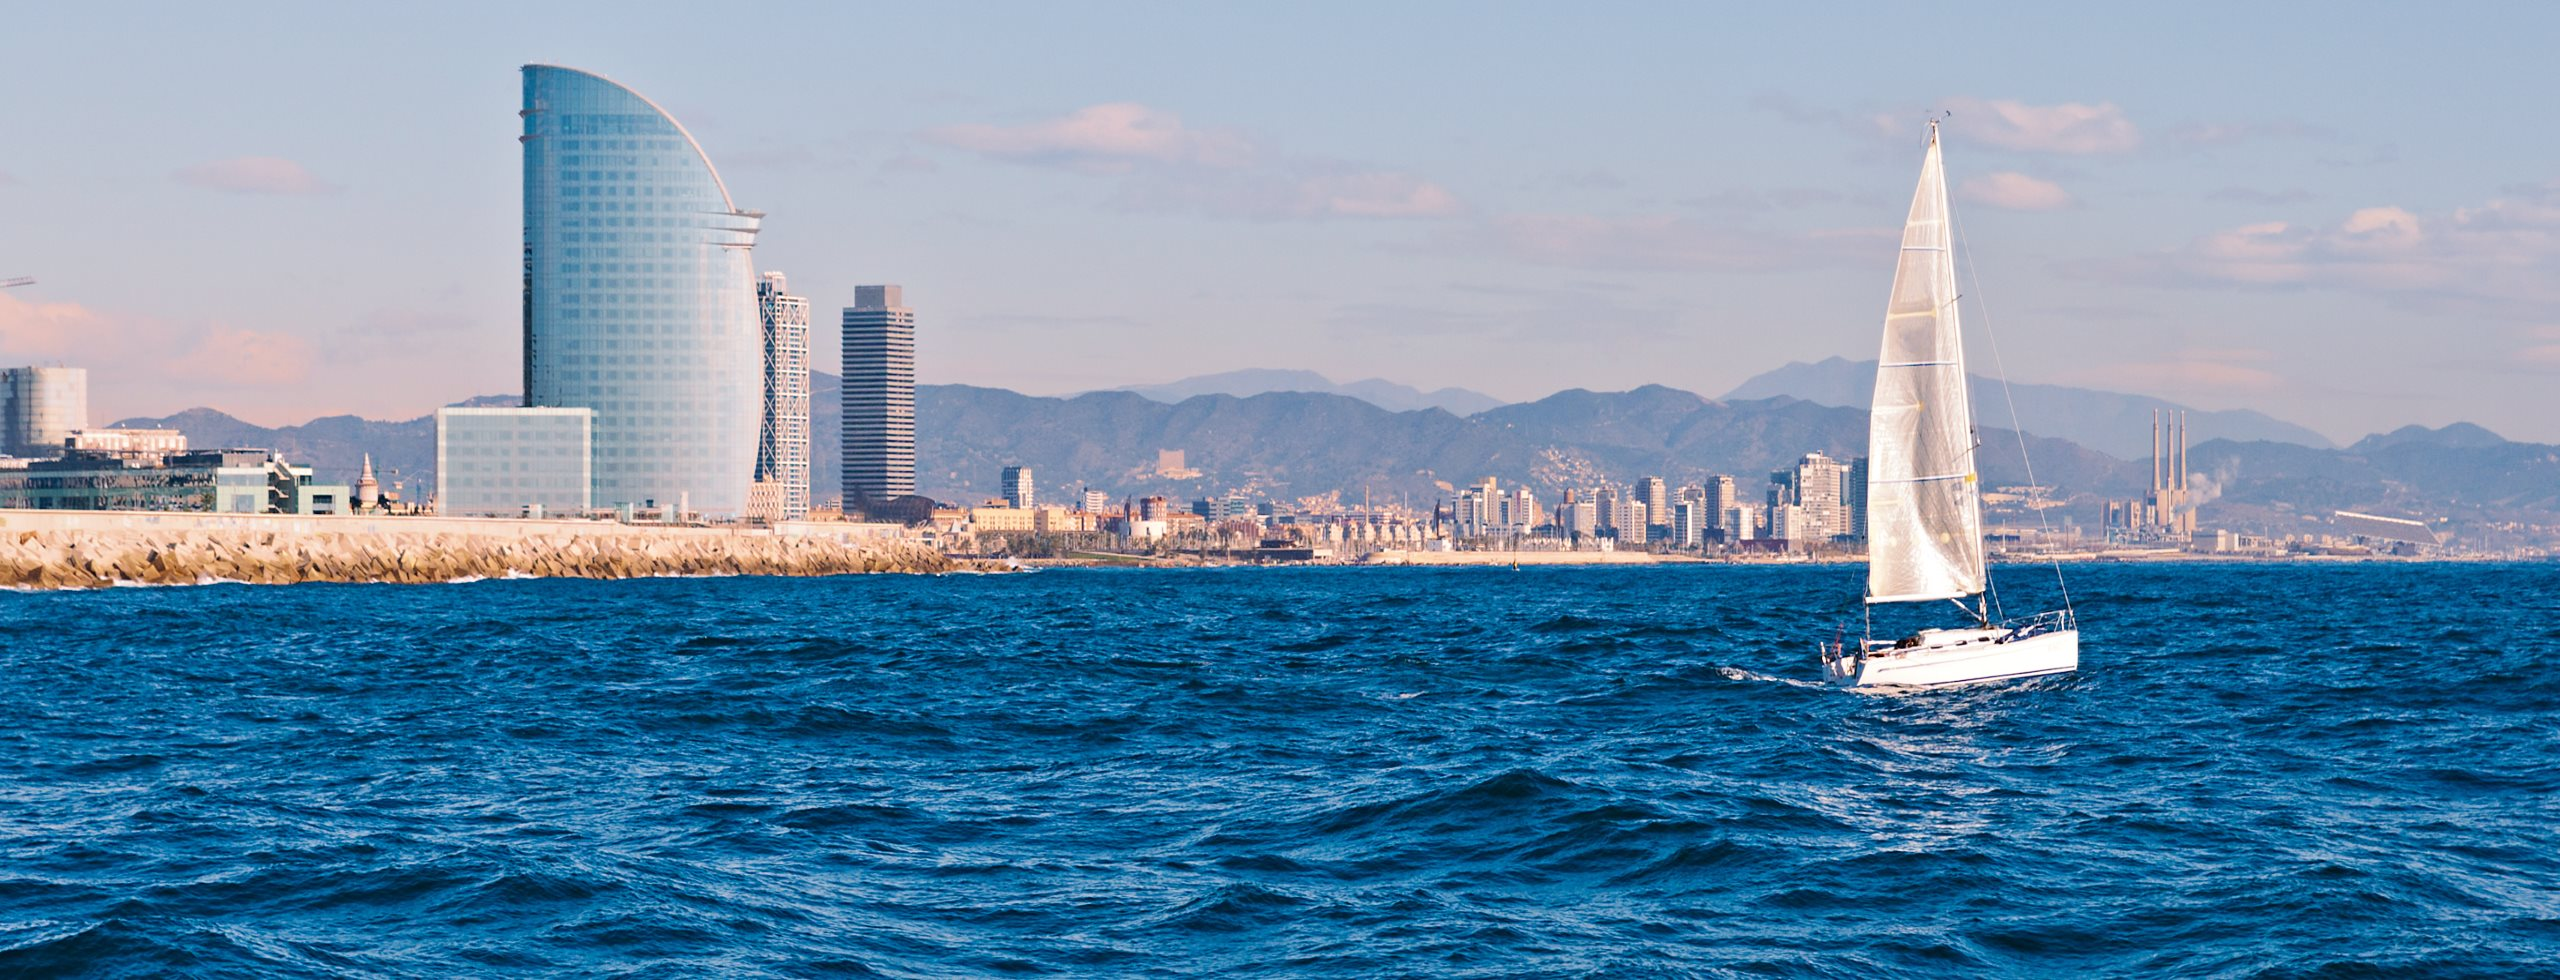 Barcelona Vacation Packages Tours Honeymoon Travel Barcelona - Spain vacation package